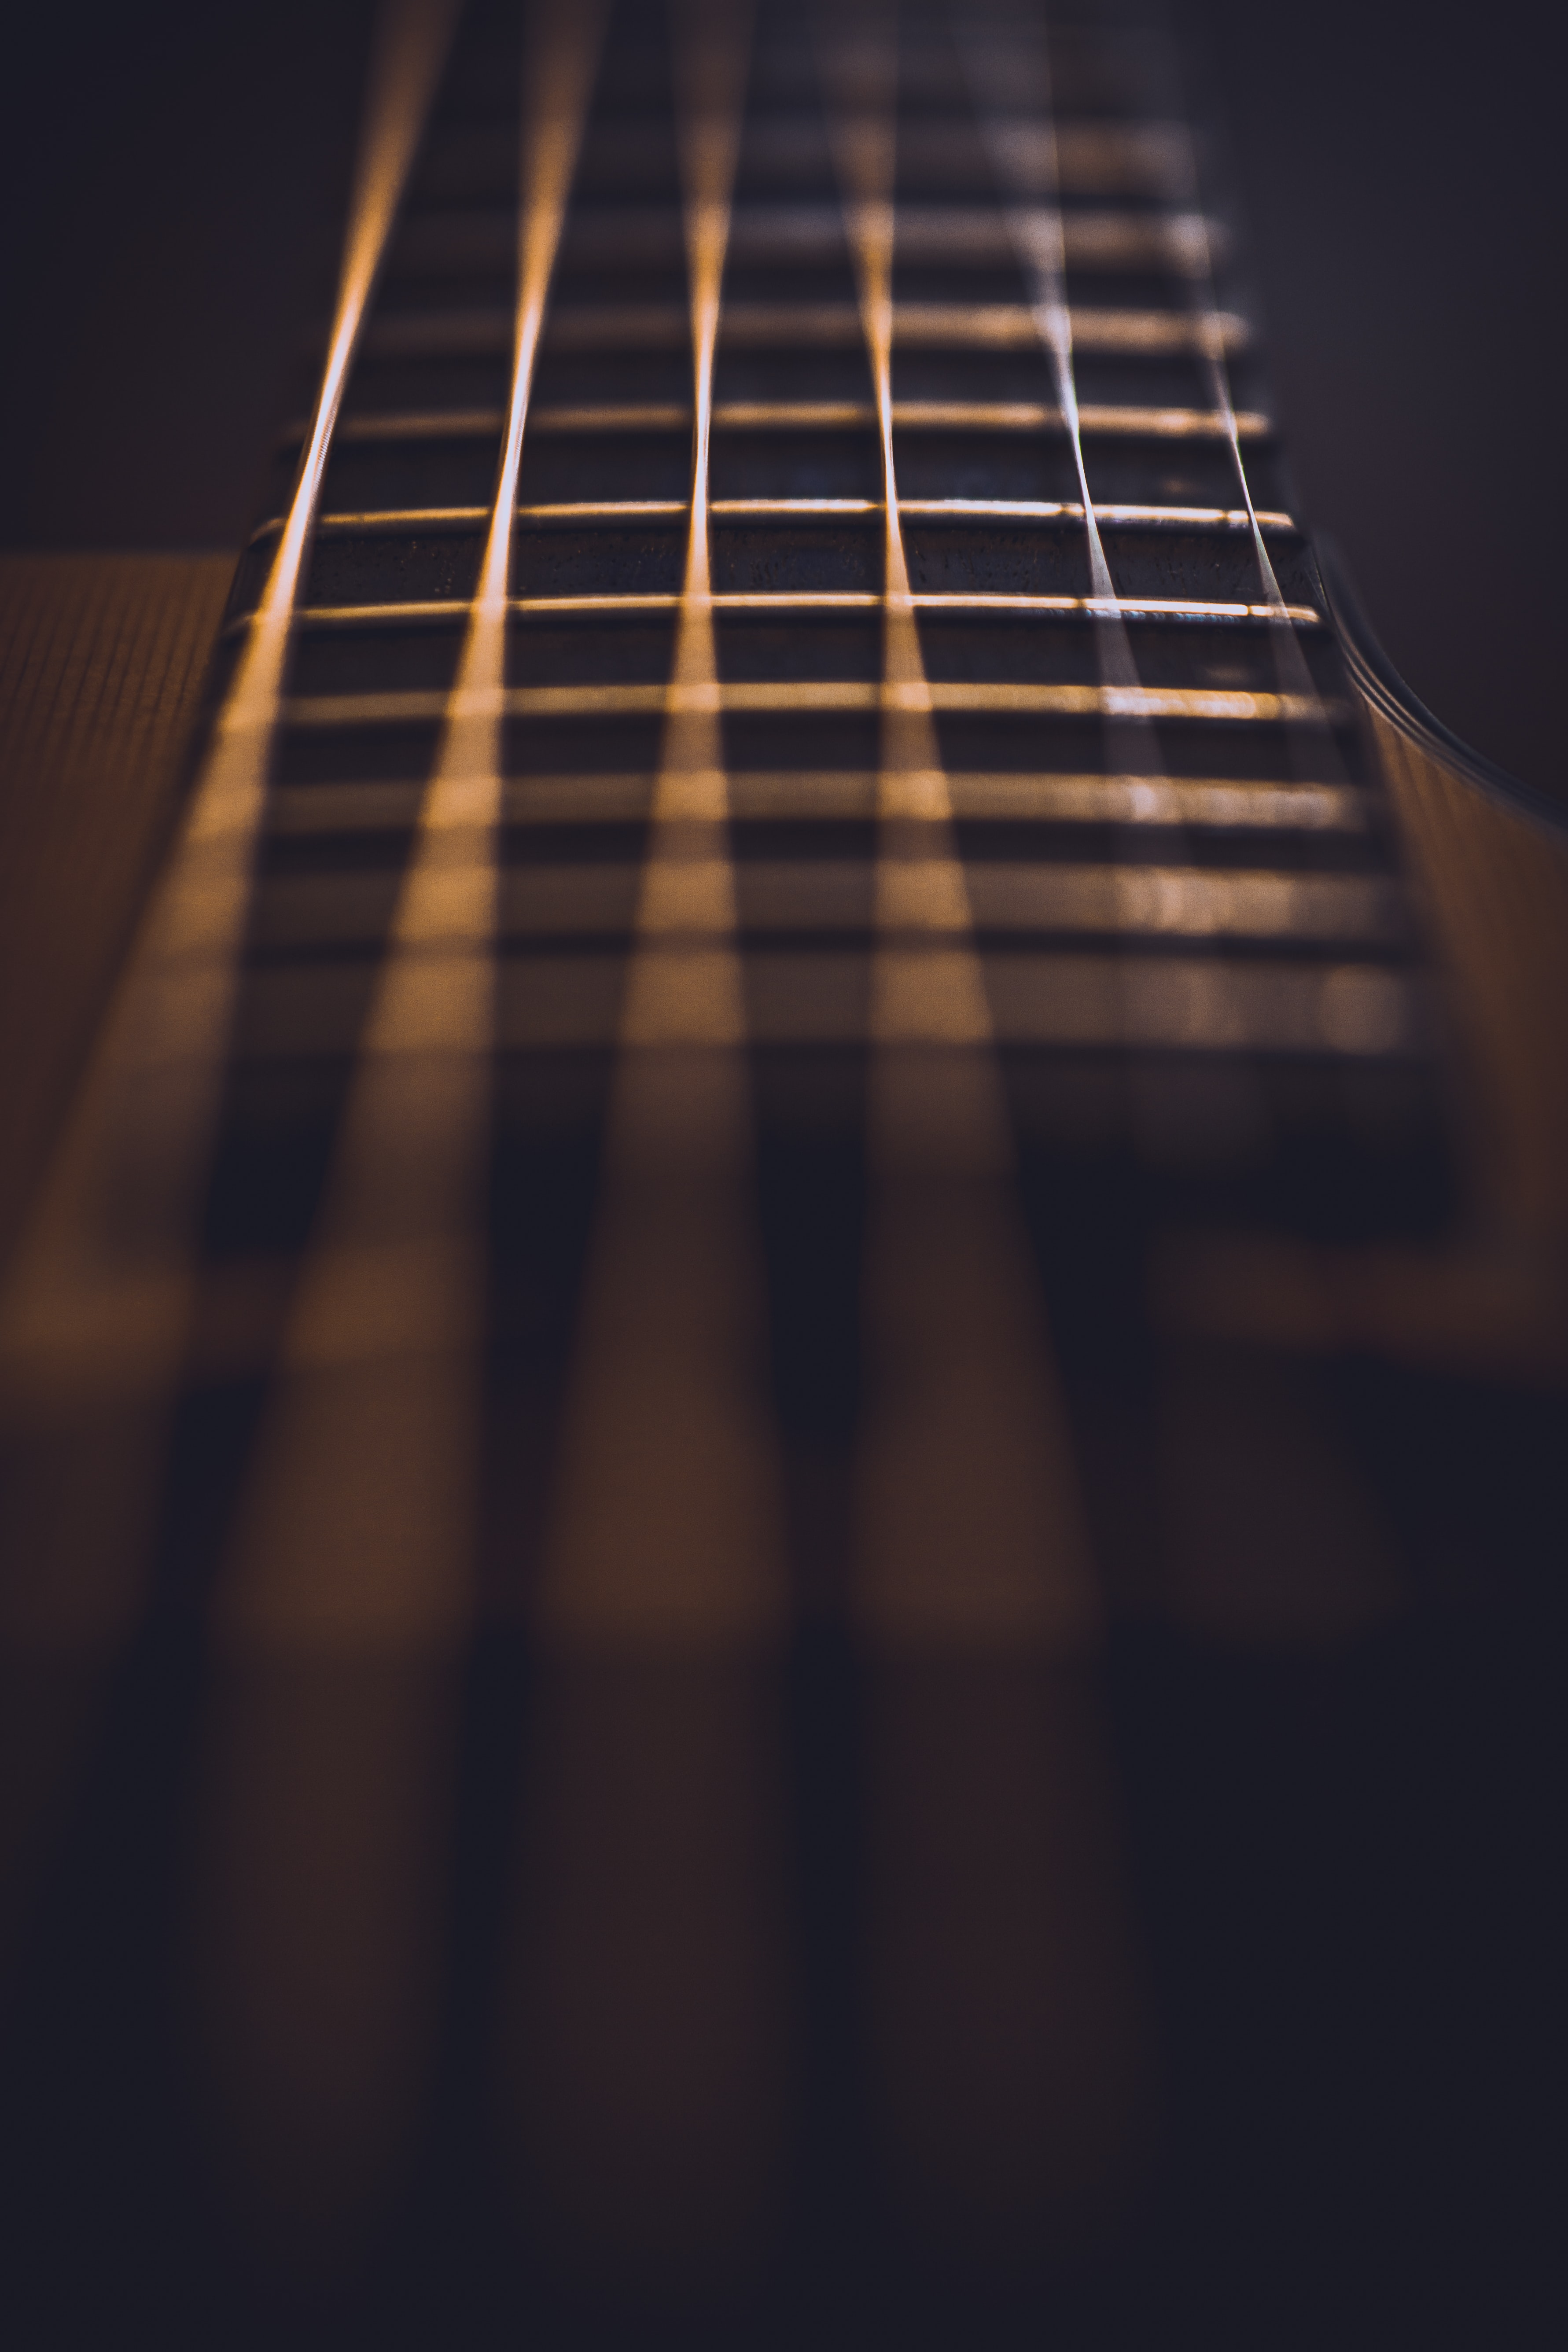 close-up photo of guitar strings